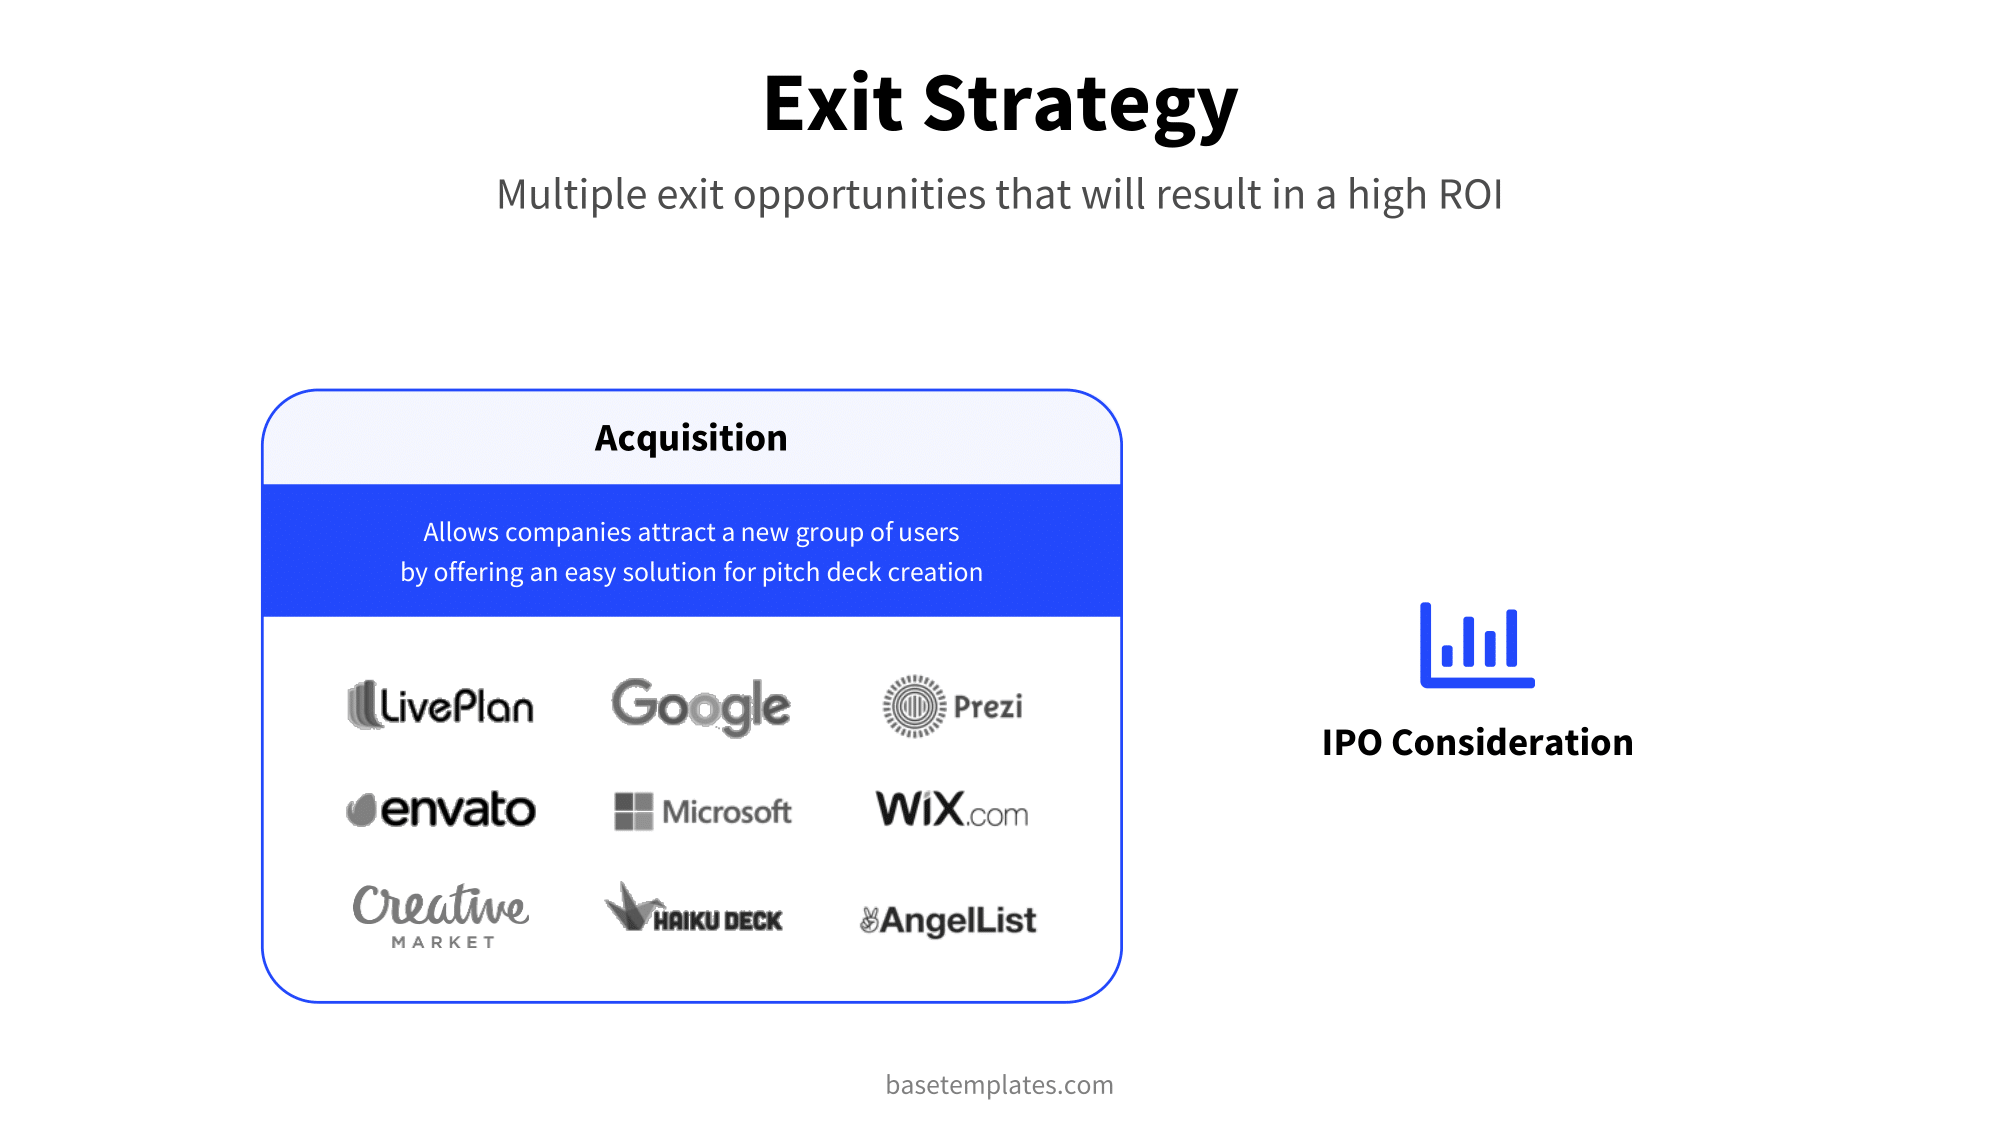 Clean design exit strategy slide with nince companies that are likely to buy your company